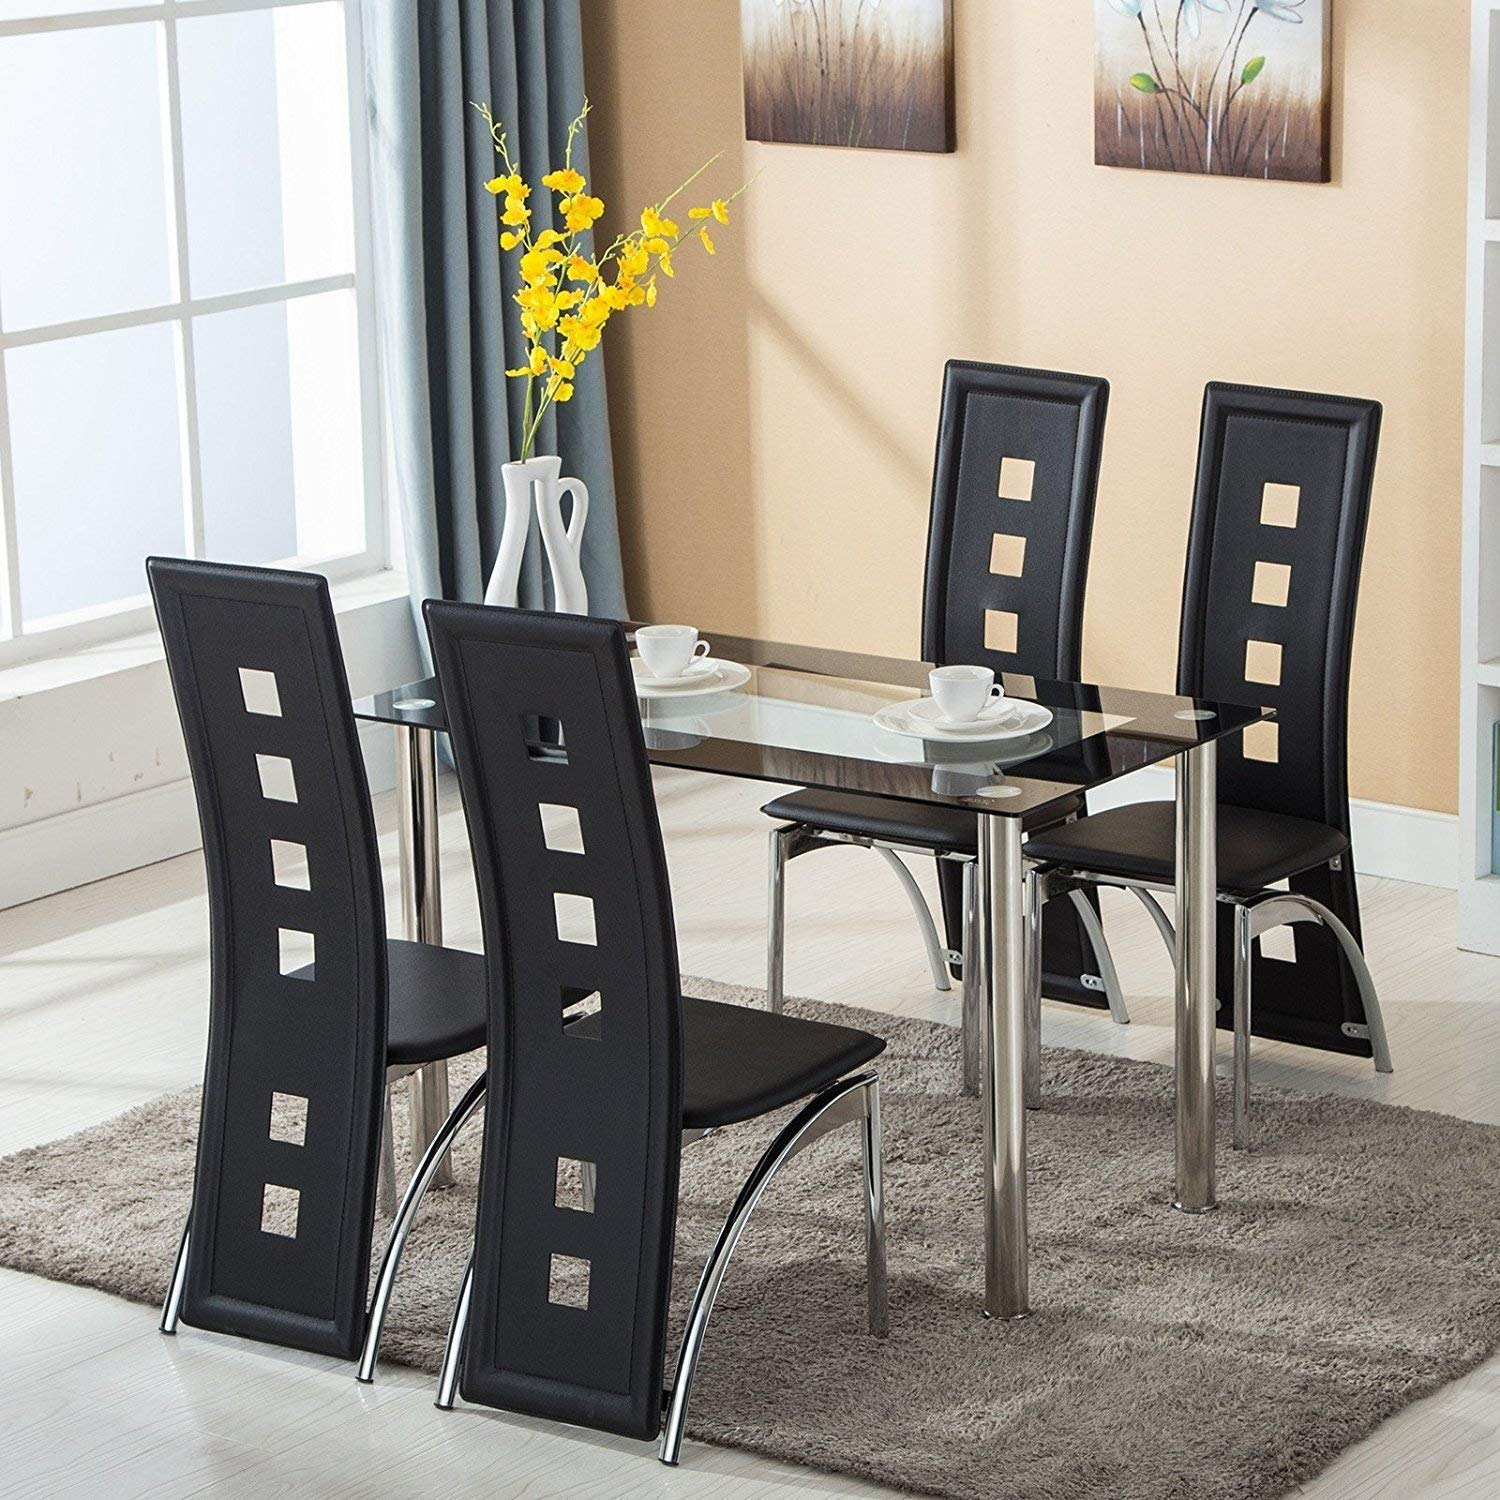 mecor dining room table set piece glass kitchen accent chair and leather chairs furniture black sets small outdoor cover couch target dressers red side green end tables with